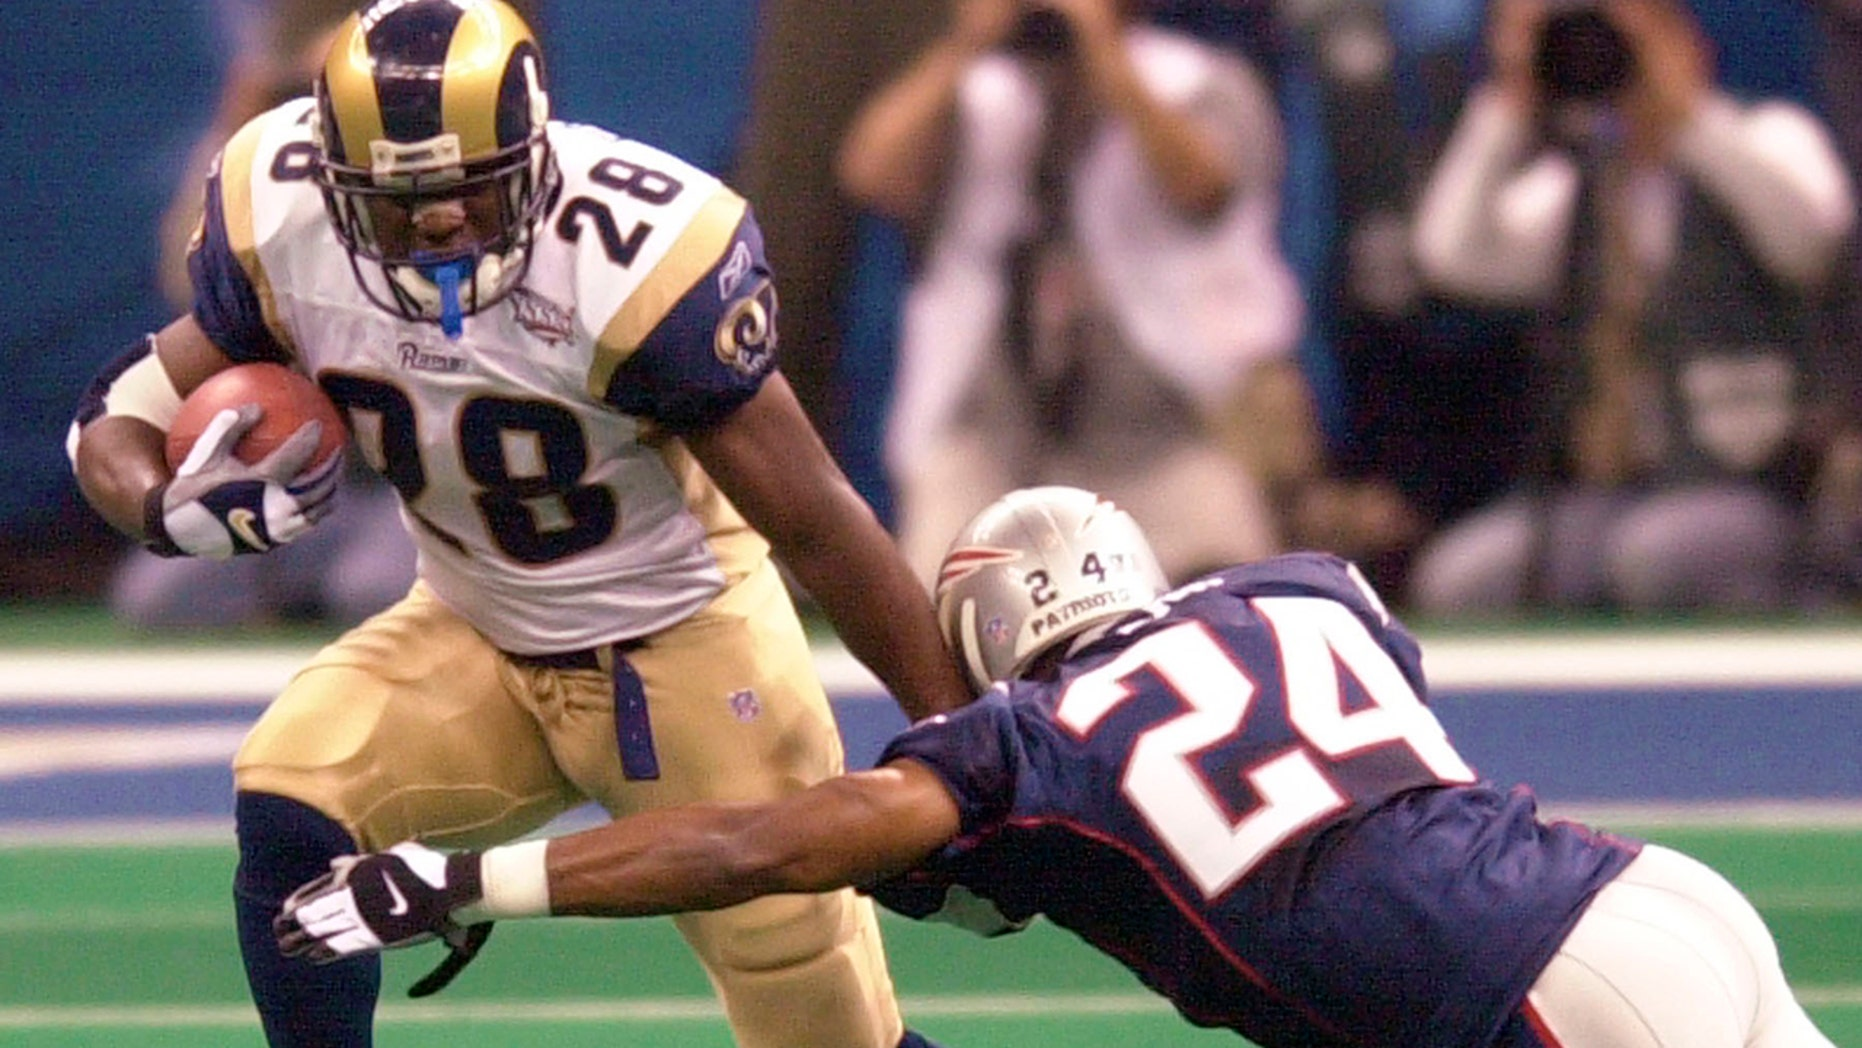 File-This Feb. 3, 2002, file photo shows St. Louis Rams running back Marshall Faulk (28) fending of New England Patriots cornerback Ty Law (24) during first-quarter play of Super Bowl XXXVI in New Orleans.